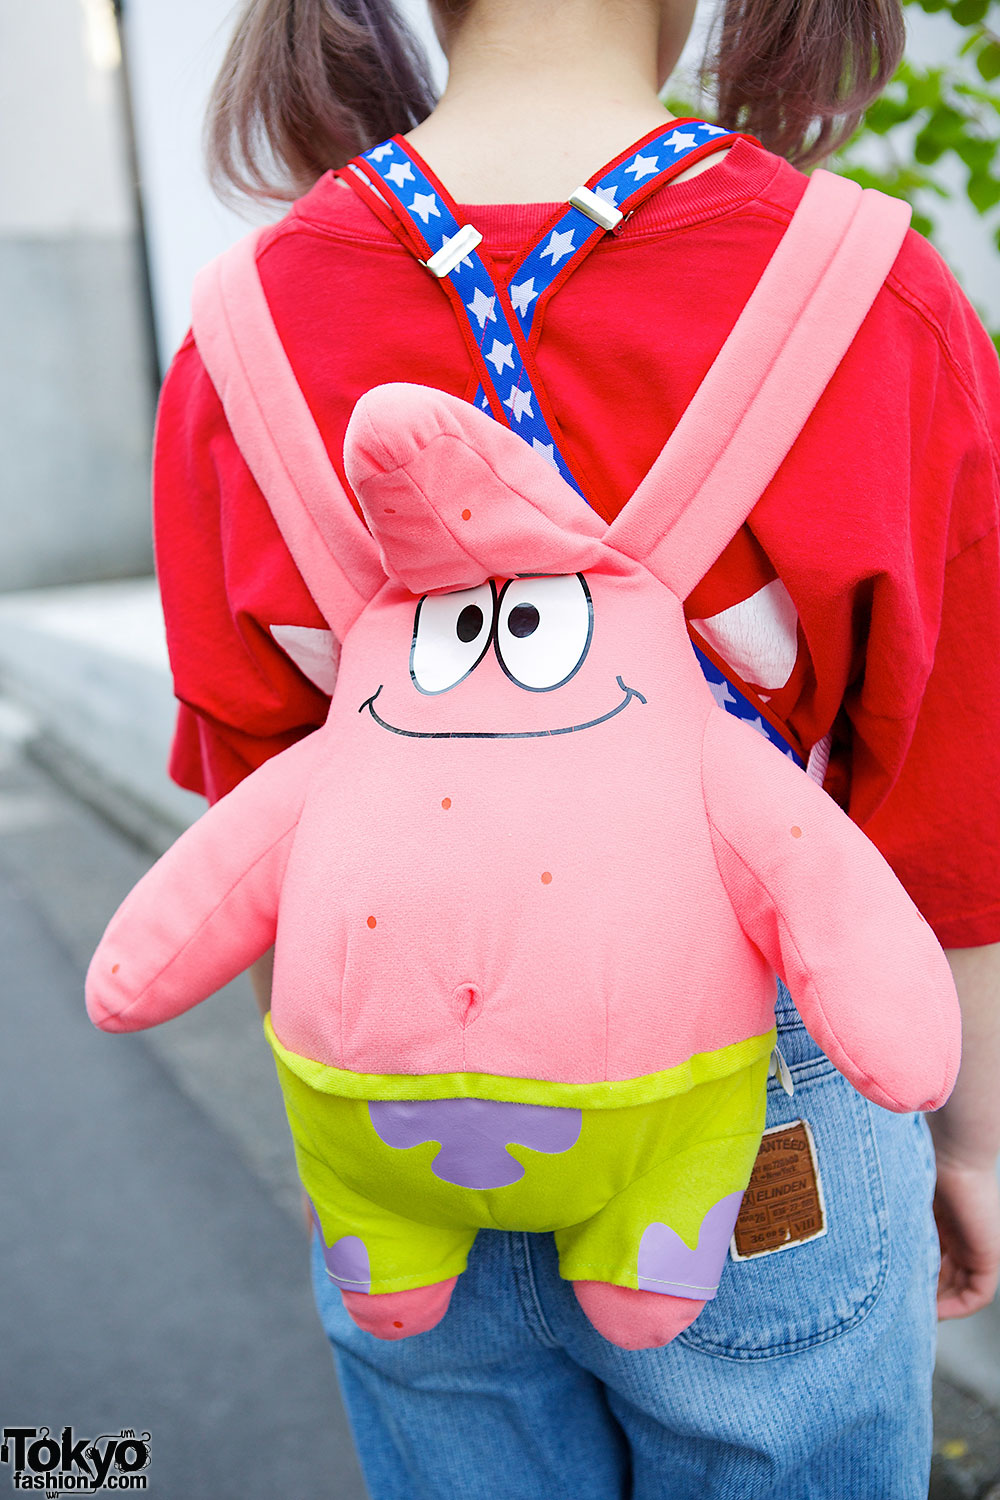 Twin Tails Amp Orange Bangs W Spank Amp Patrick Star